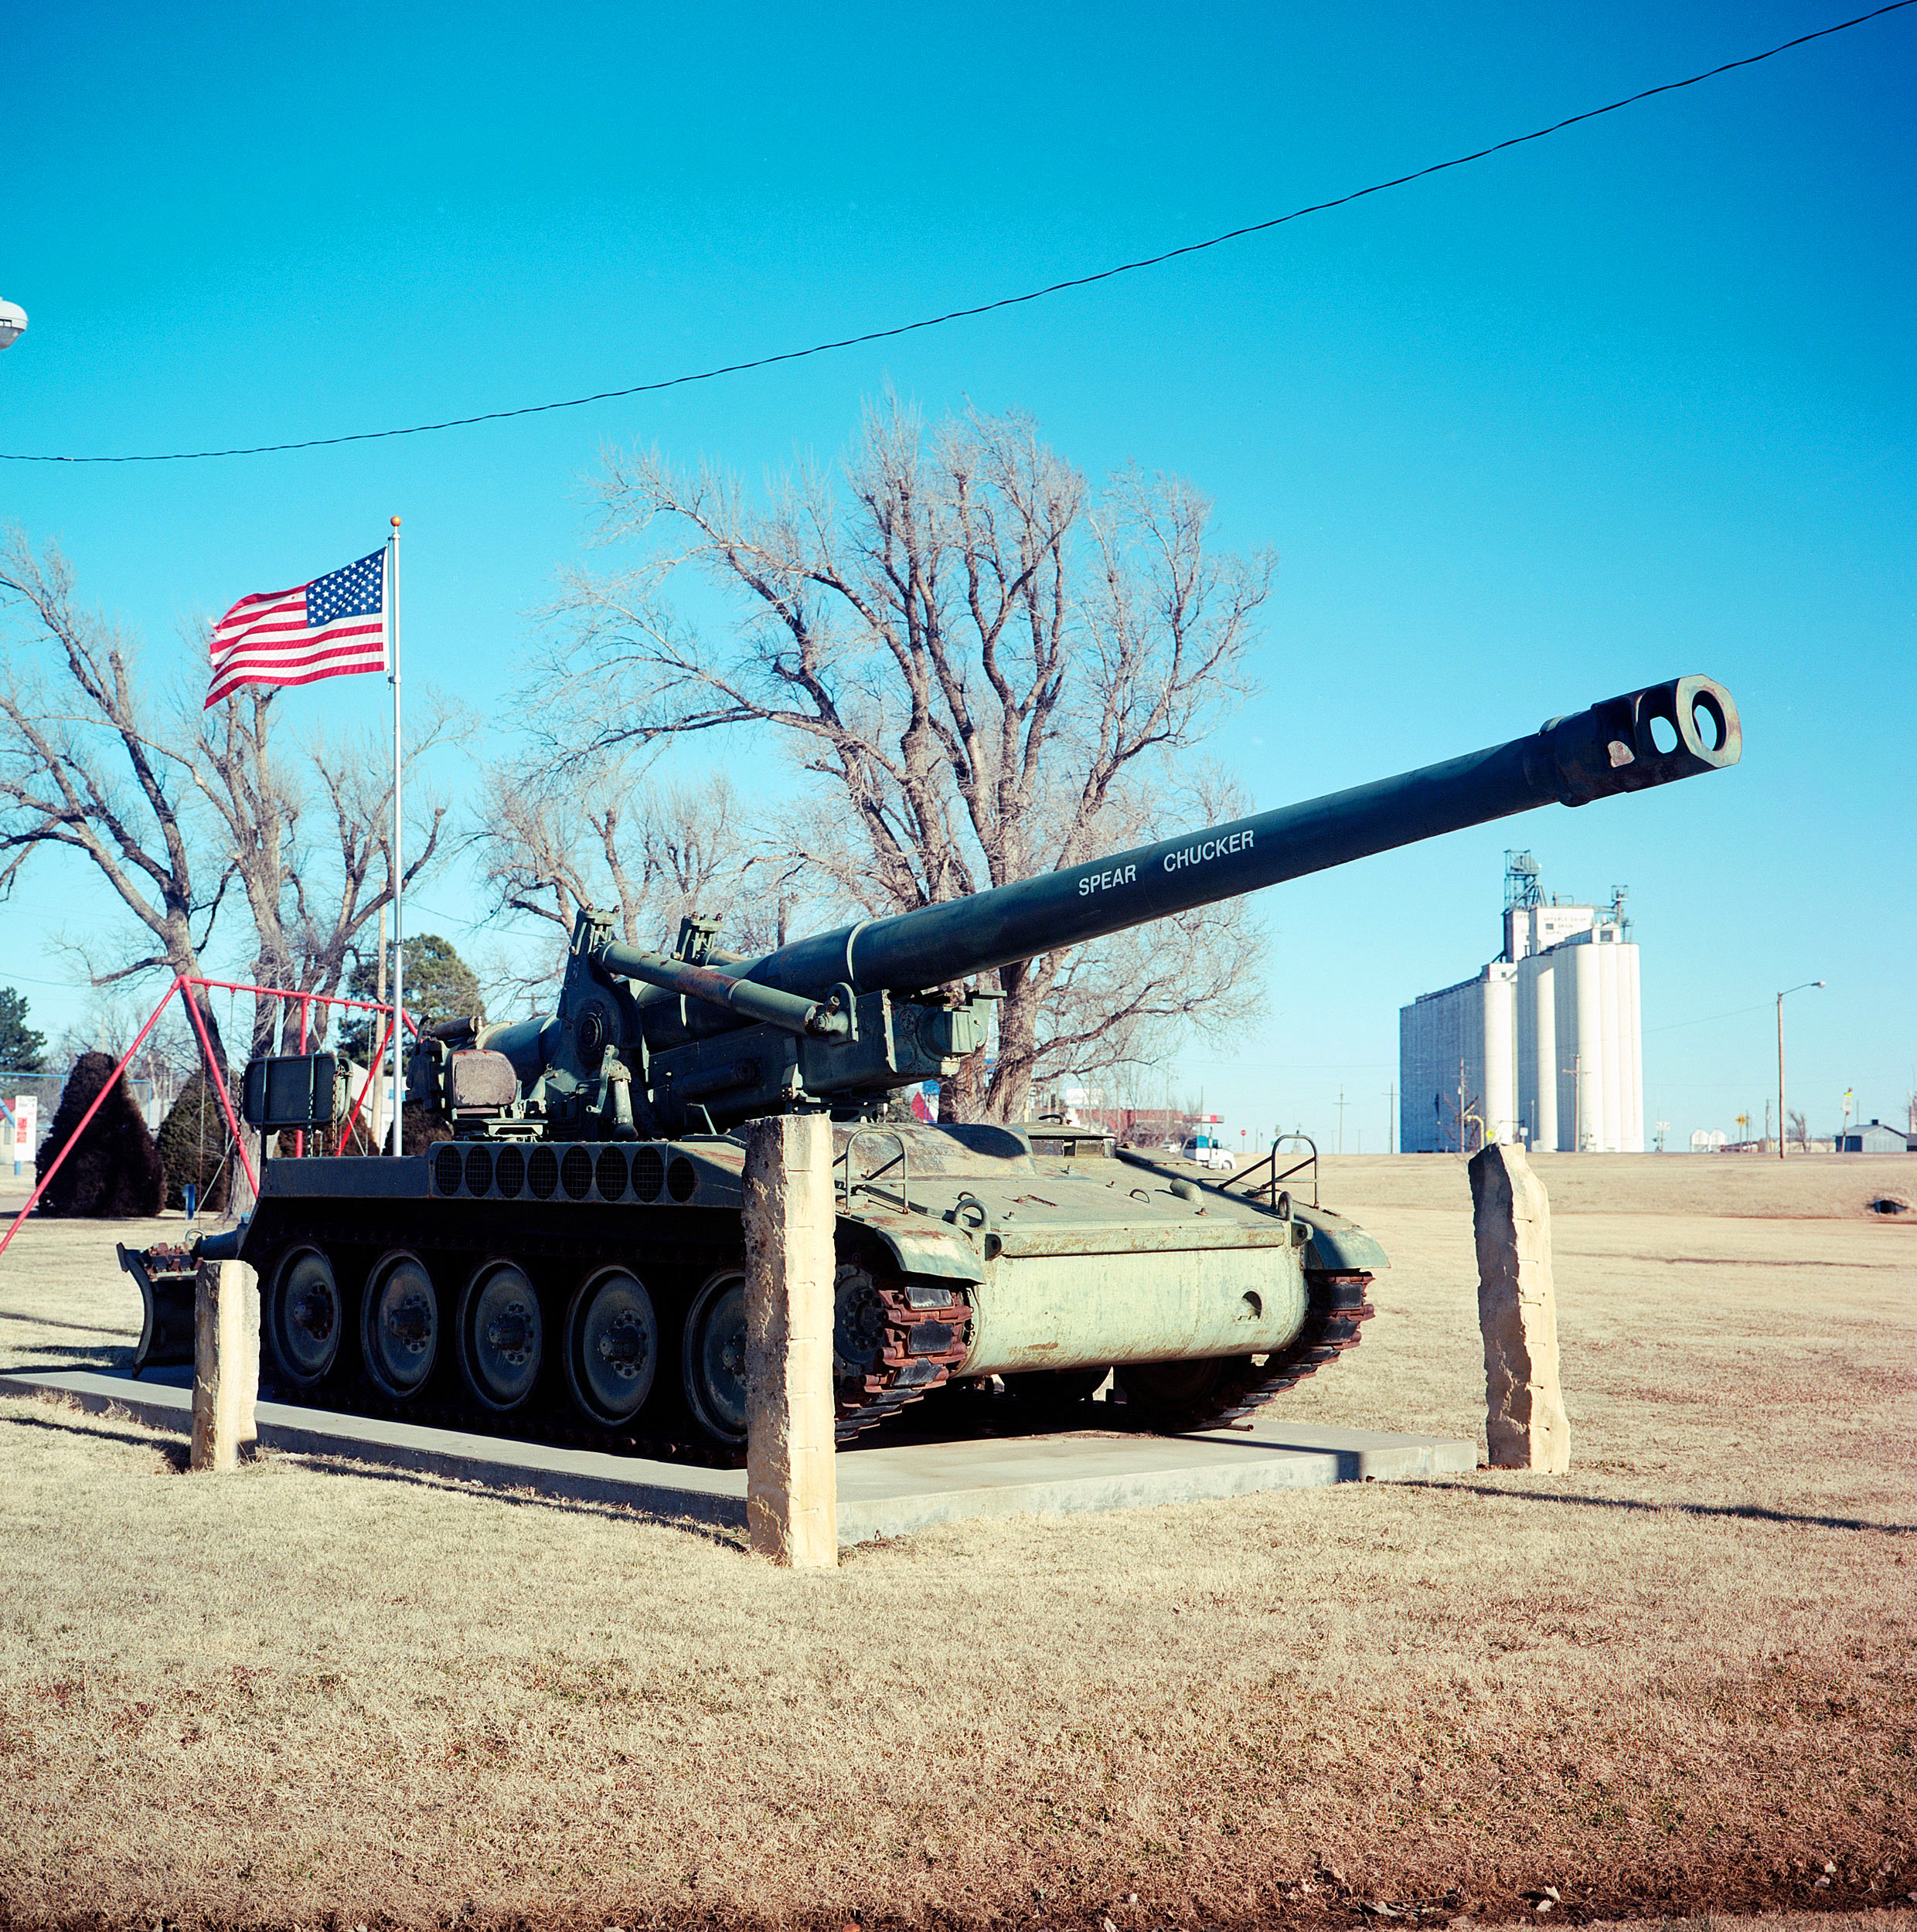 "A decommissioned tank with the words ""Spear Chucker"" on the turret sits in the Offerle, Kansas city park."